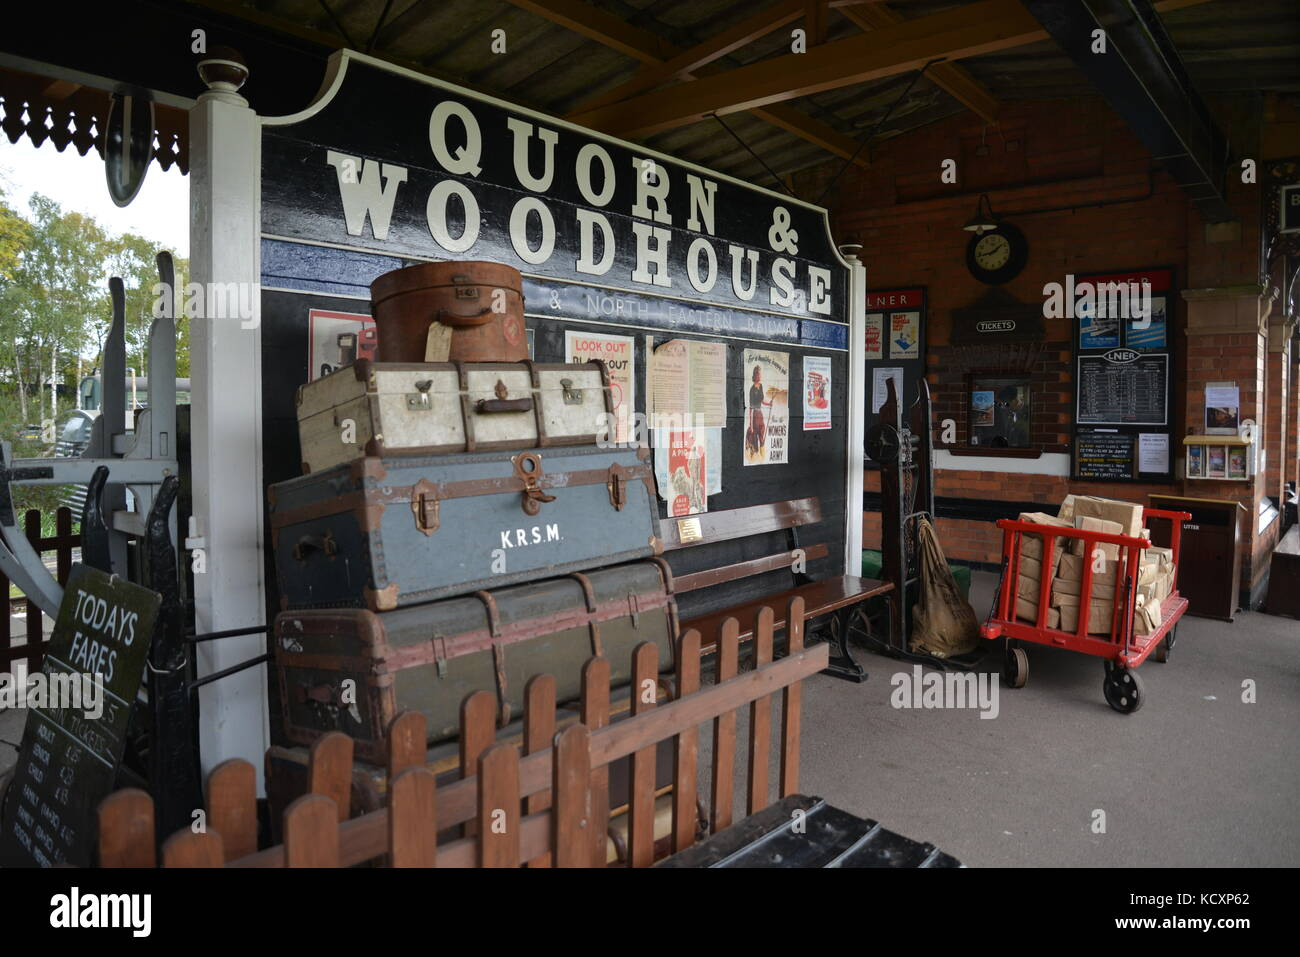 Quorn & Woodhouse Platform Signs at Great Central Railway Steam Gala 2017 Quorn Station, Loughborough Stock Photo